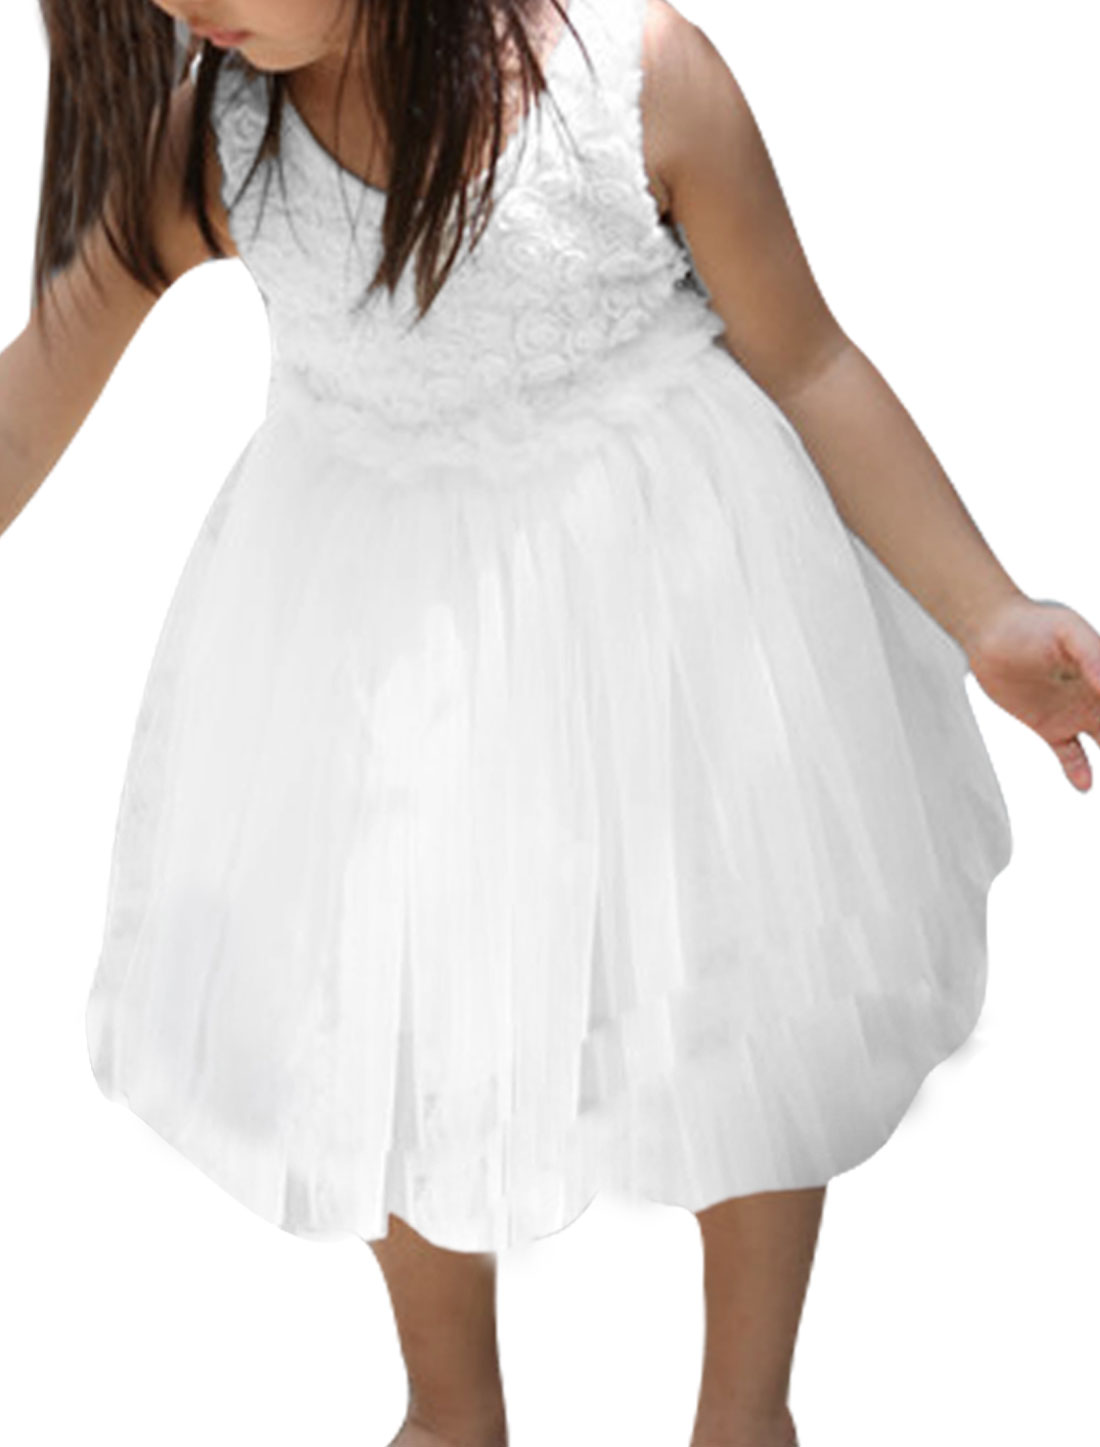 Girl Sleeveless Flower Design Mesh Panel Pleated Dress White 3T